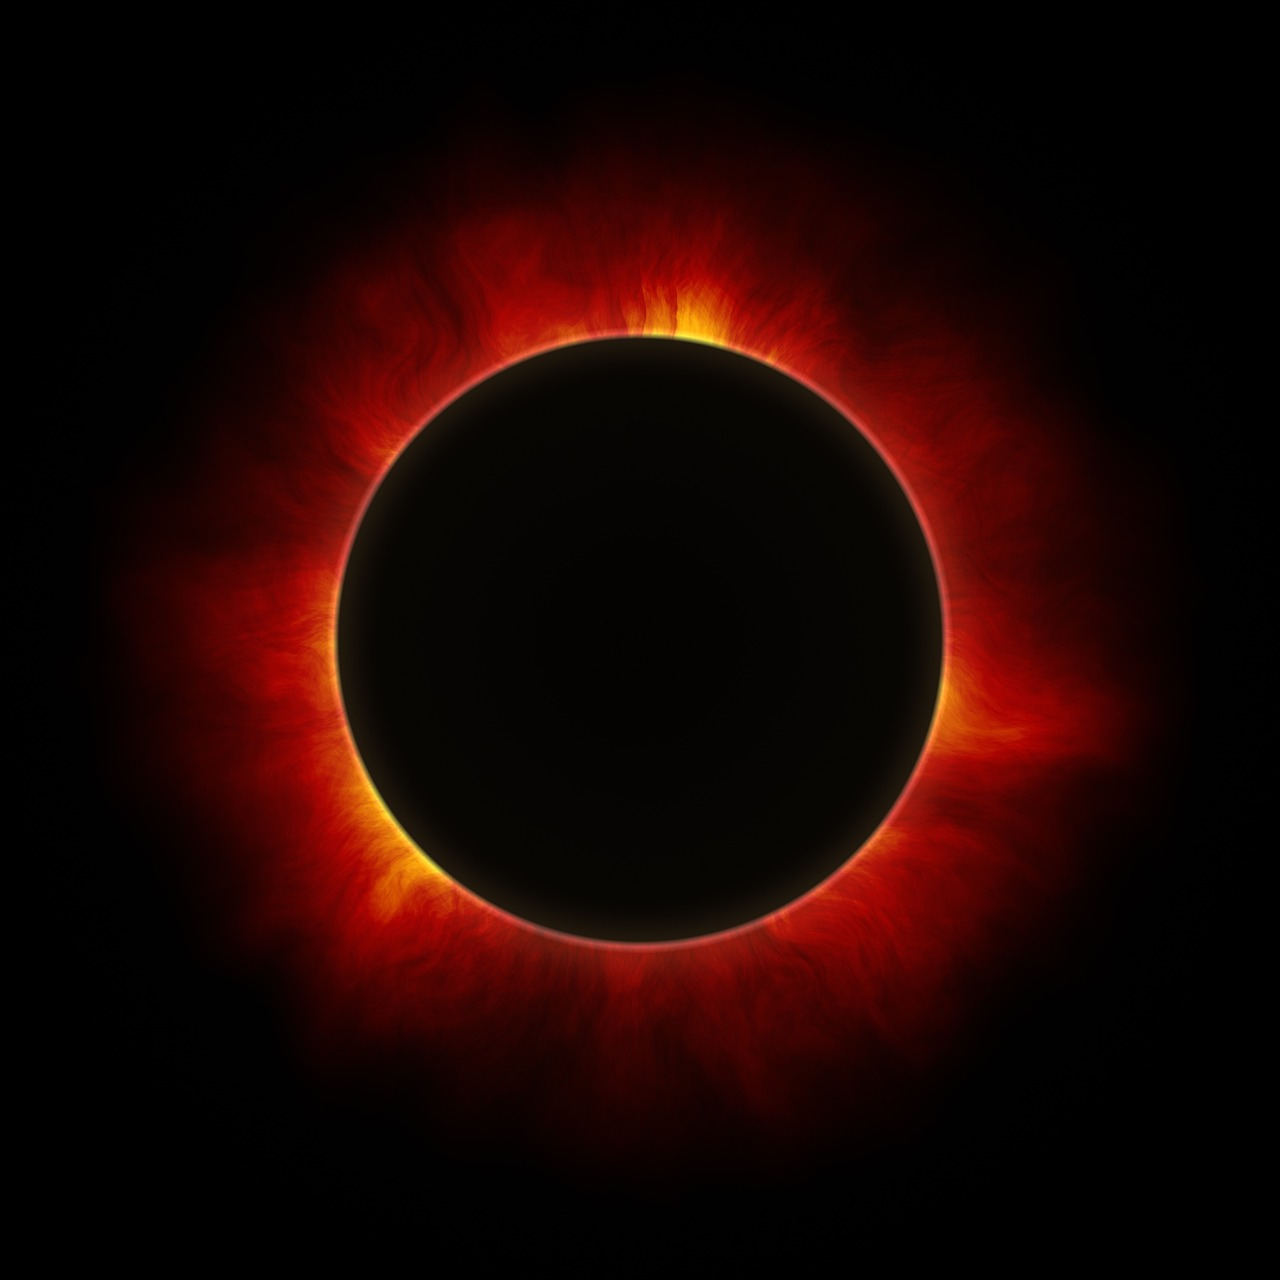 Don T Miss This Rare Solar Eclipse On March 8 9